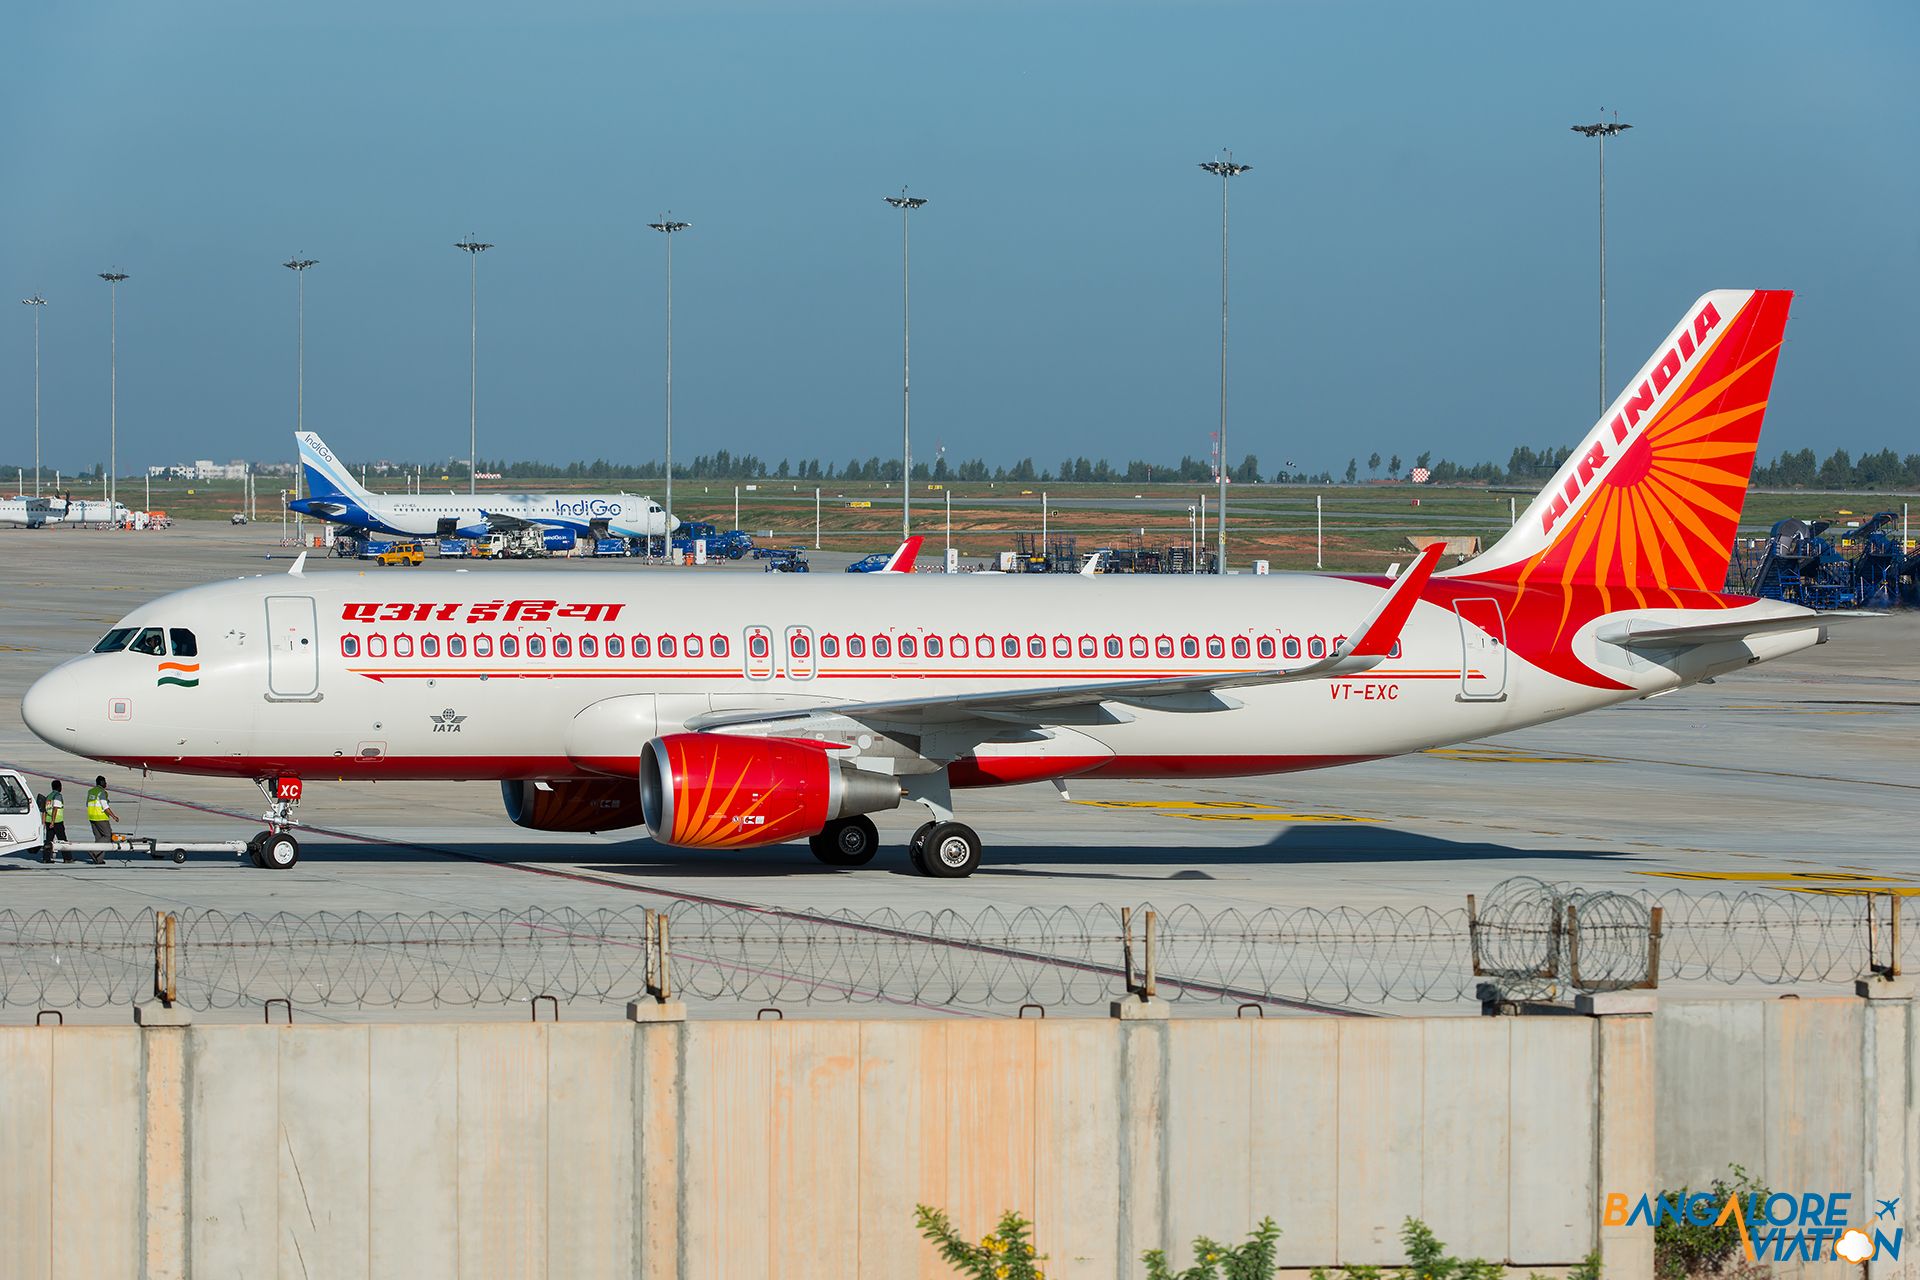 air india Air india is the flag carrier airline of india it is owned by air india limited, a government-owned enterprise, and operates a fleet of airbus and boeing aircraft serving 94 domestic and international destinations.